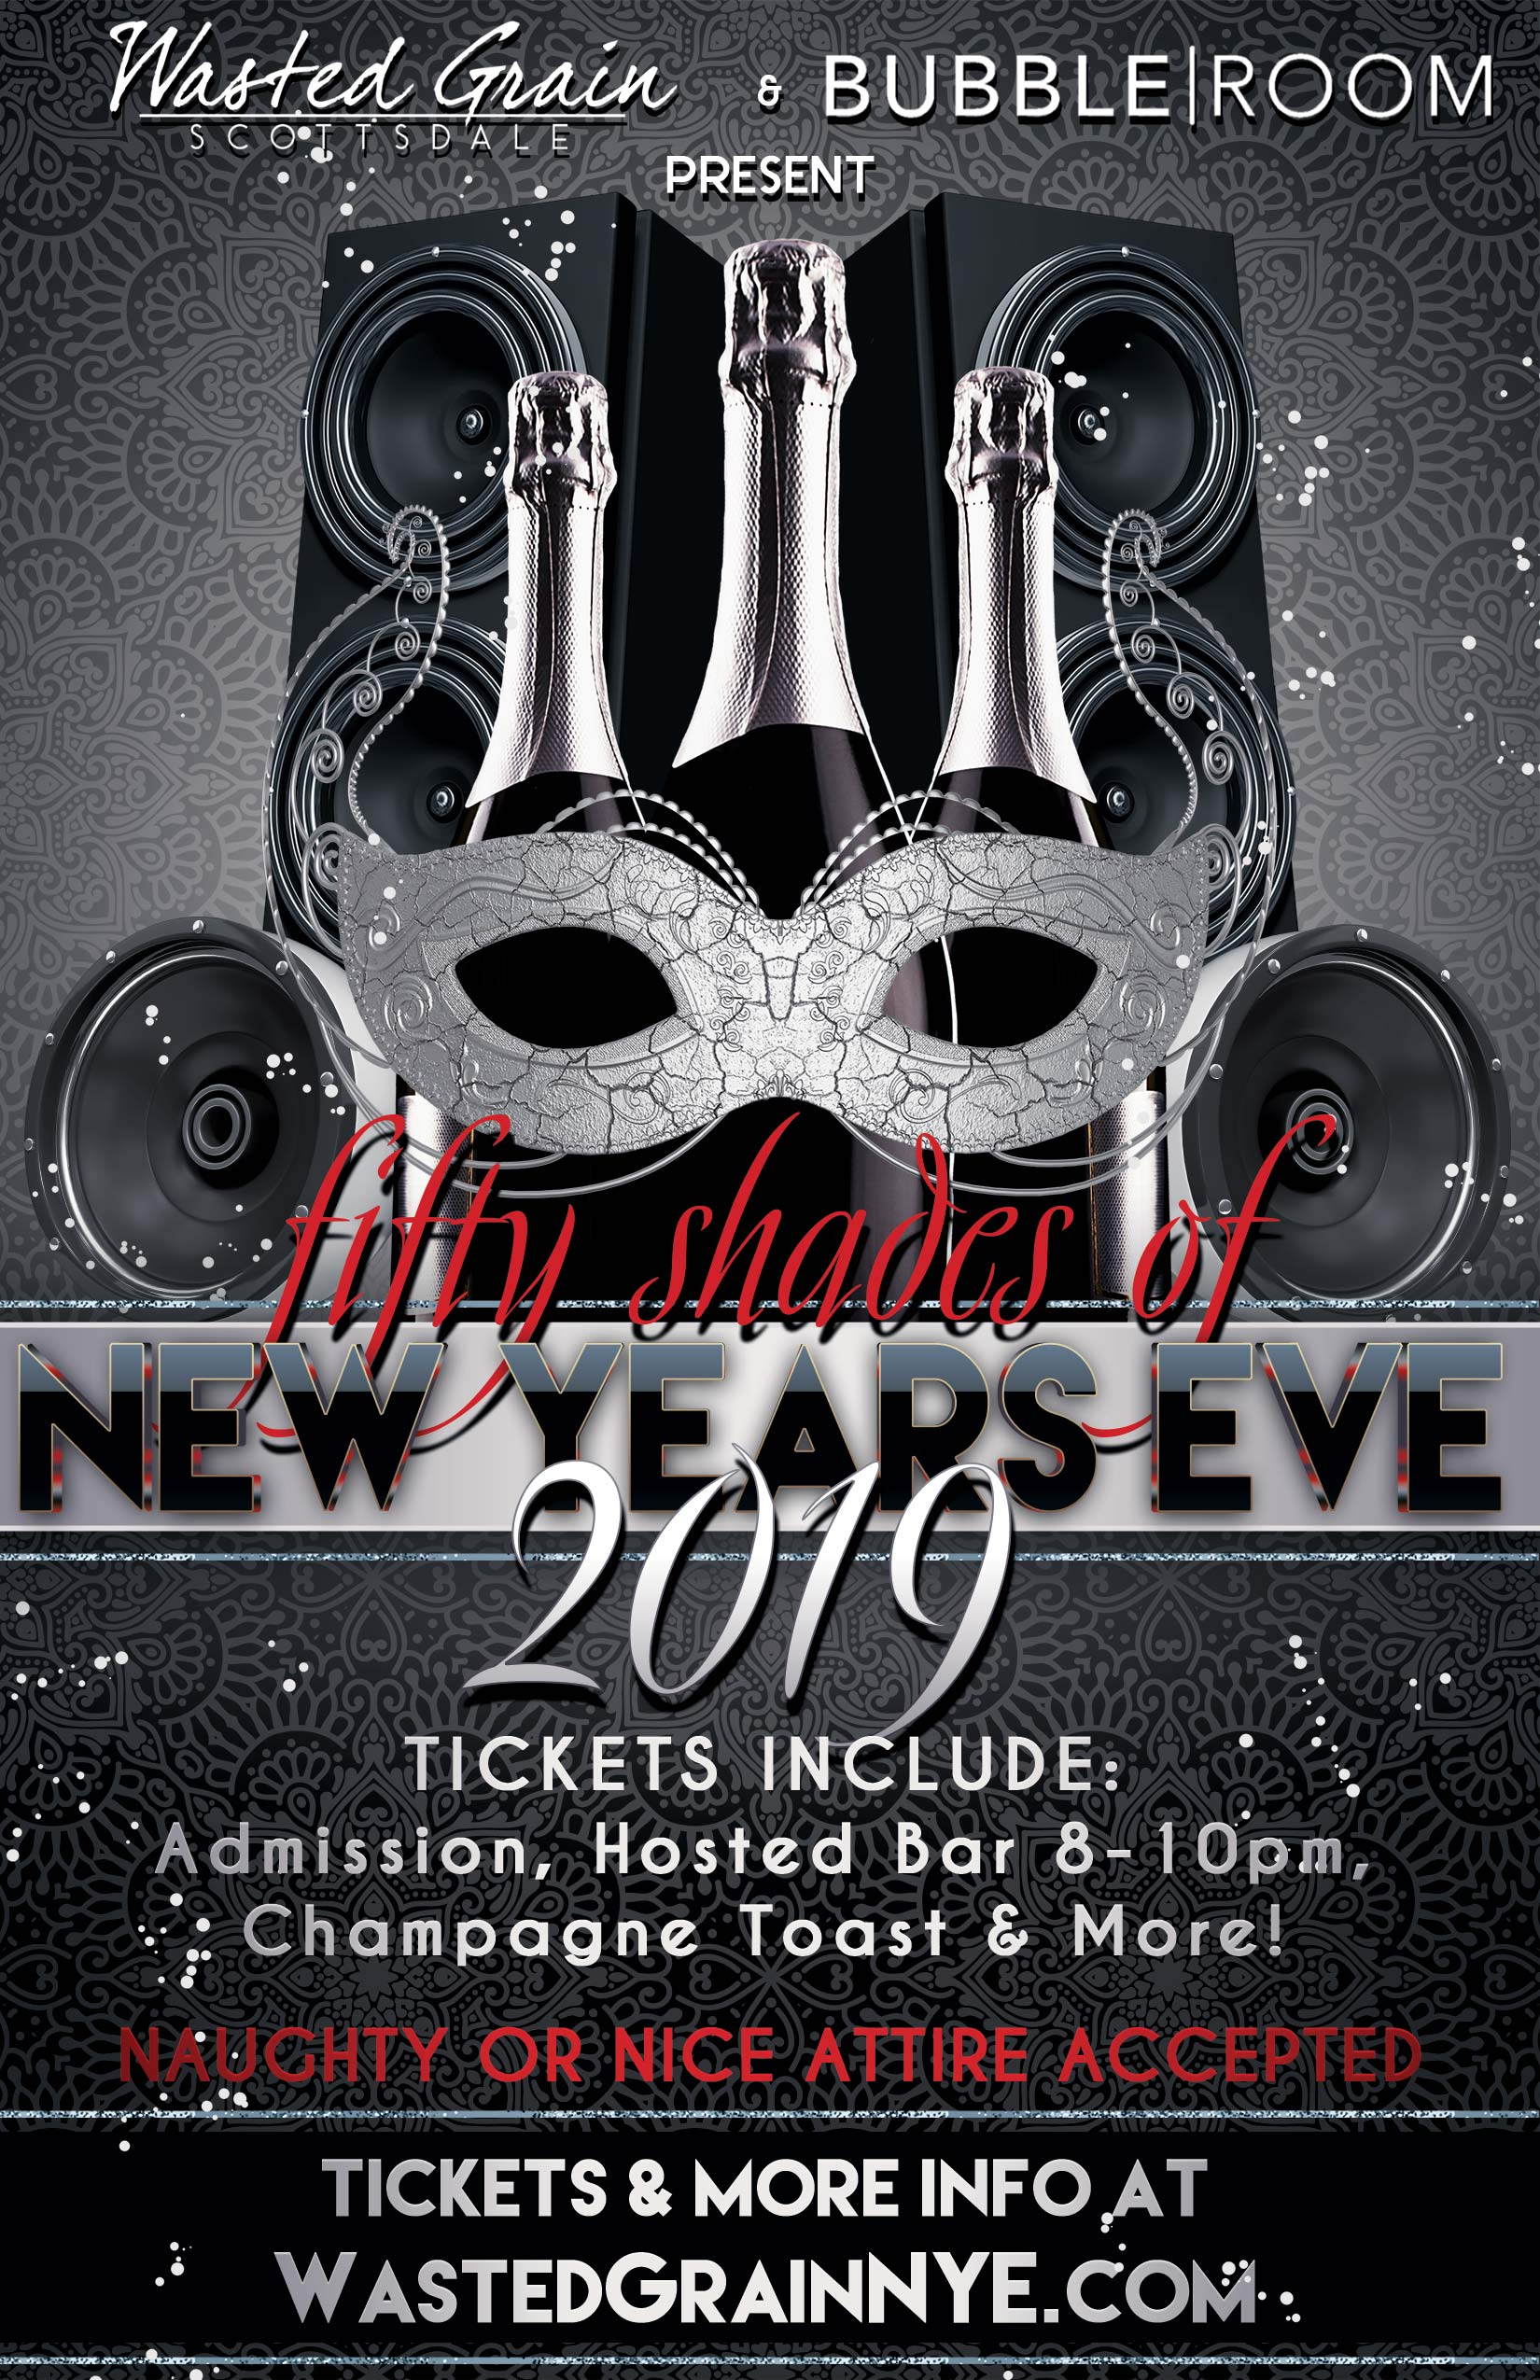 Wasted Grain and Bubble Room New Year's Eve Party - Tickets Include Admission, a Hosted Bar from 8-10pm, Champagne Toast at Midnight and more!